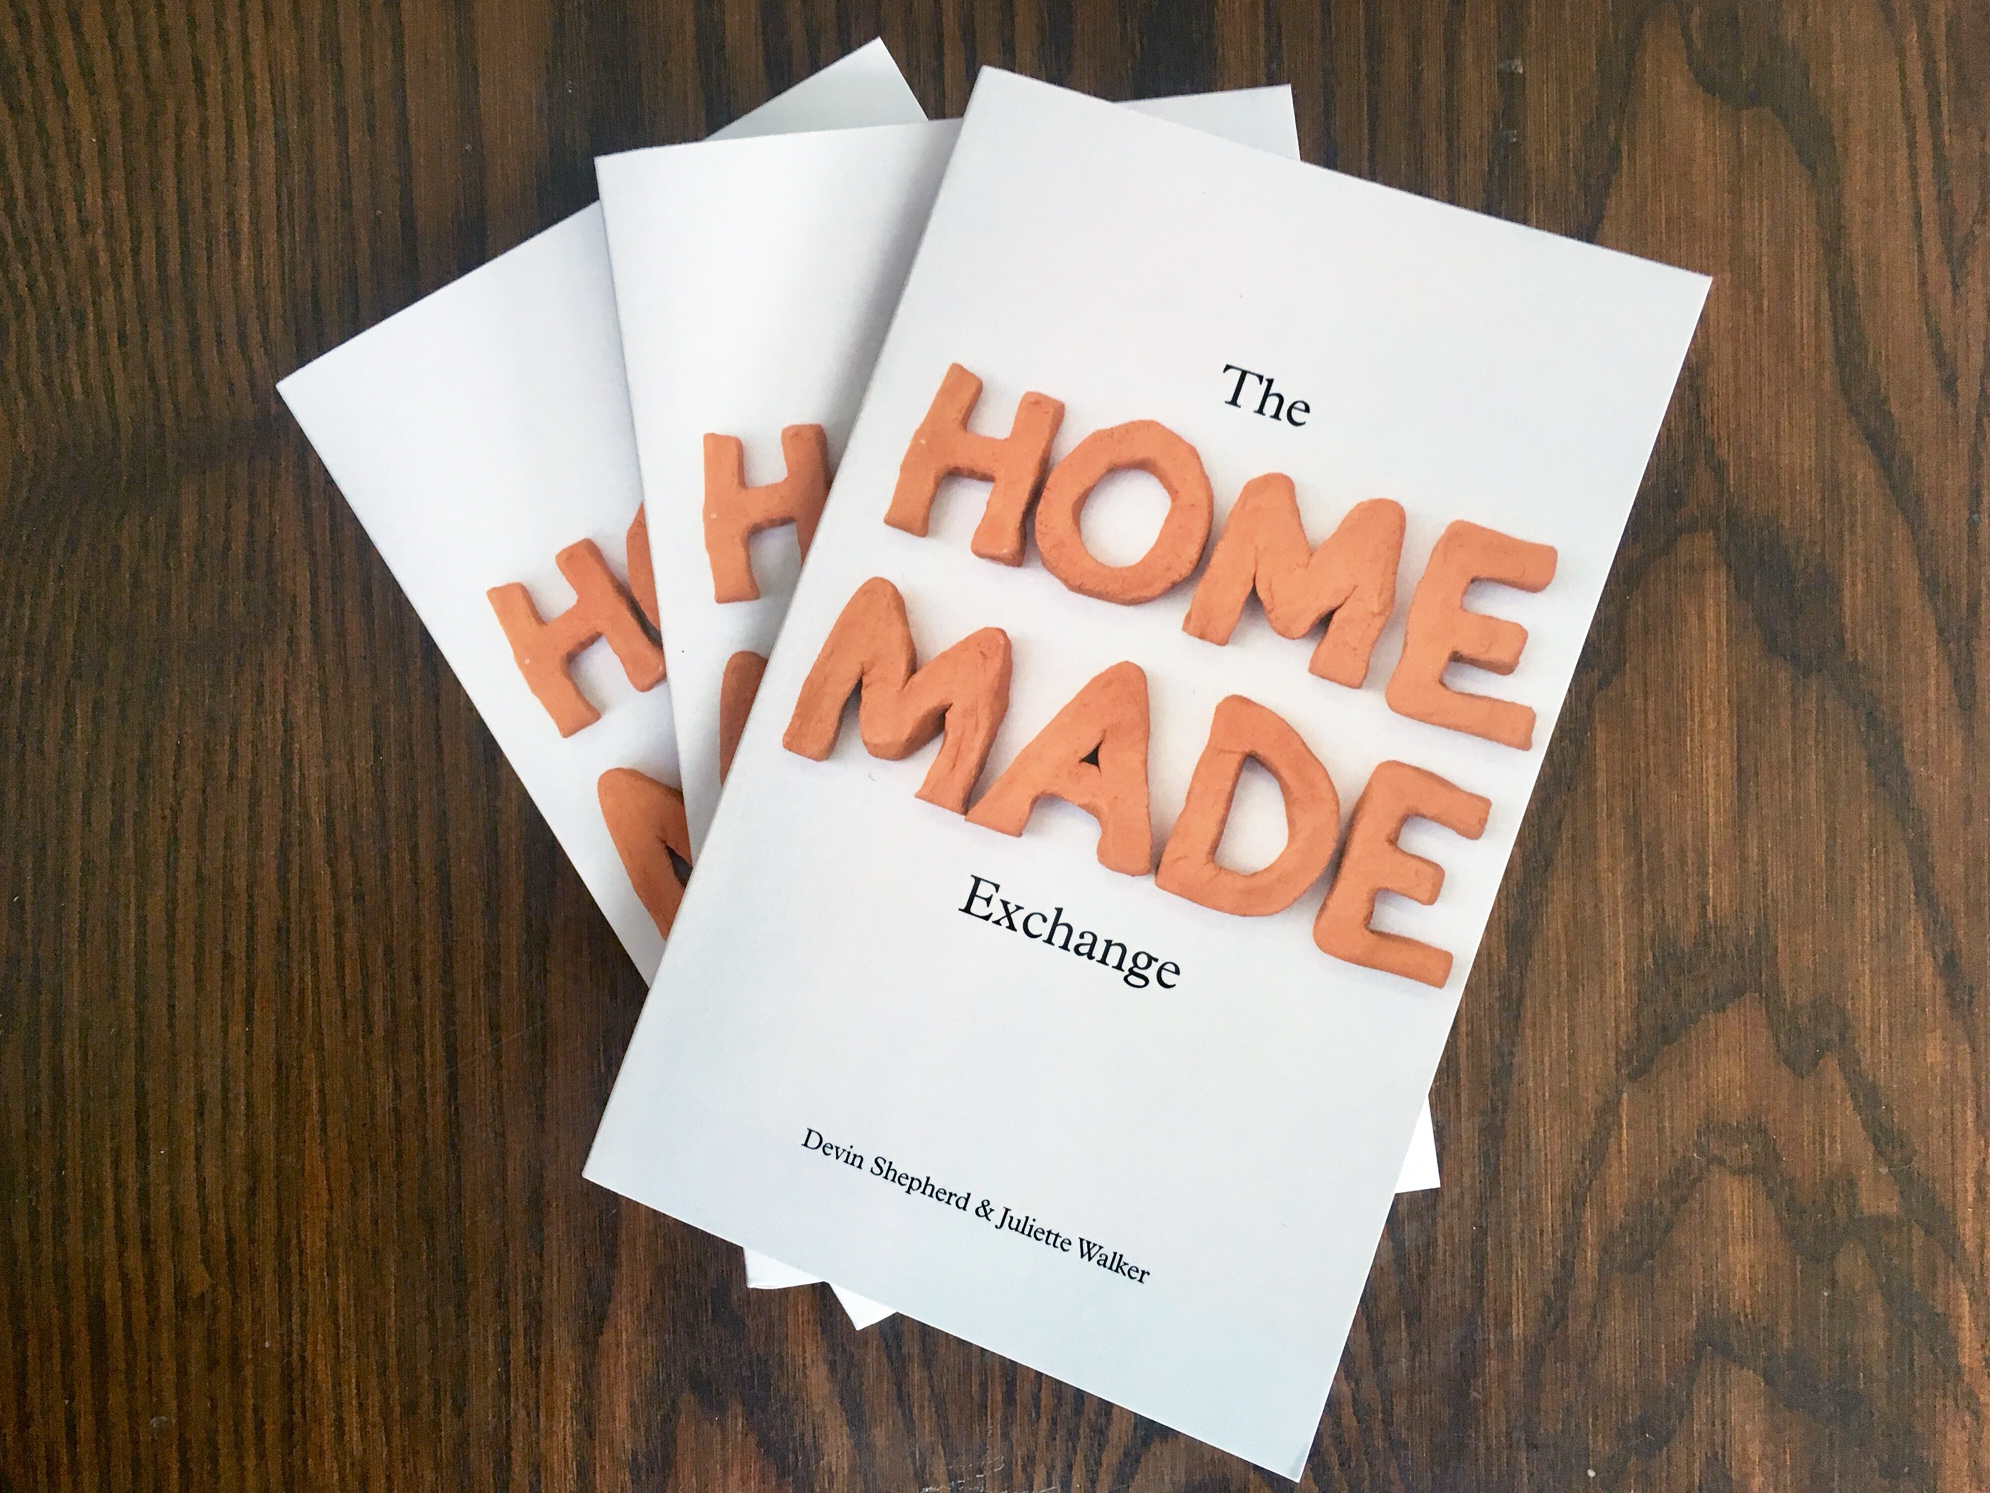 The Homemade Exchange book